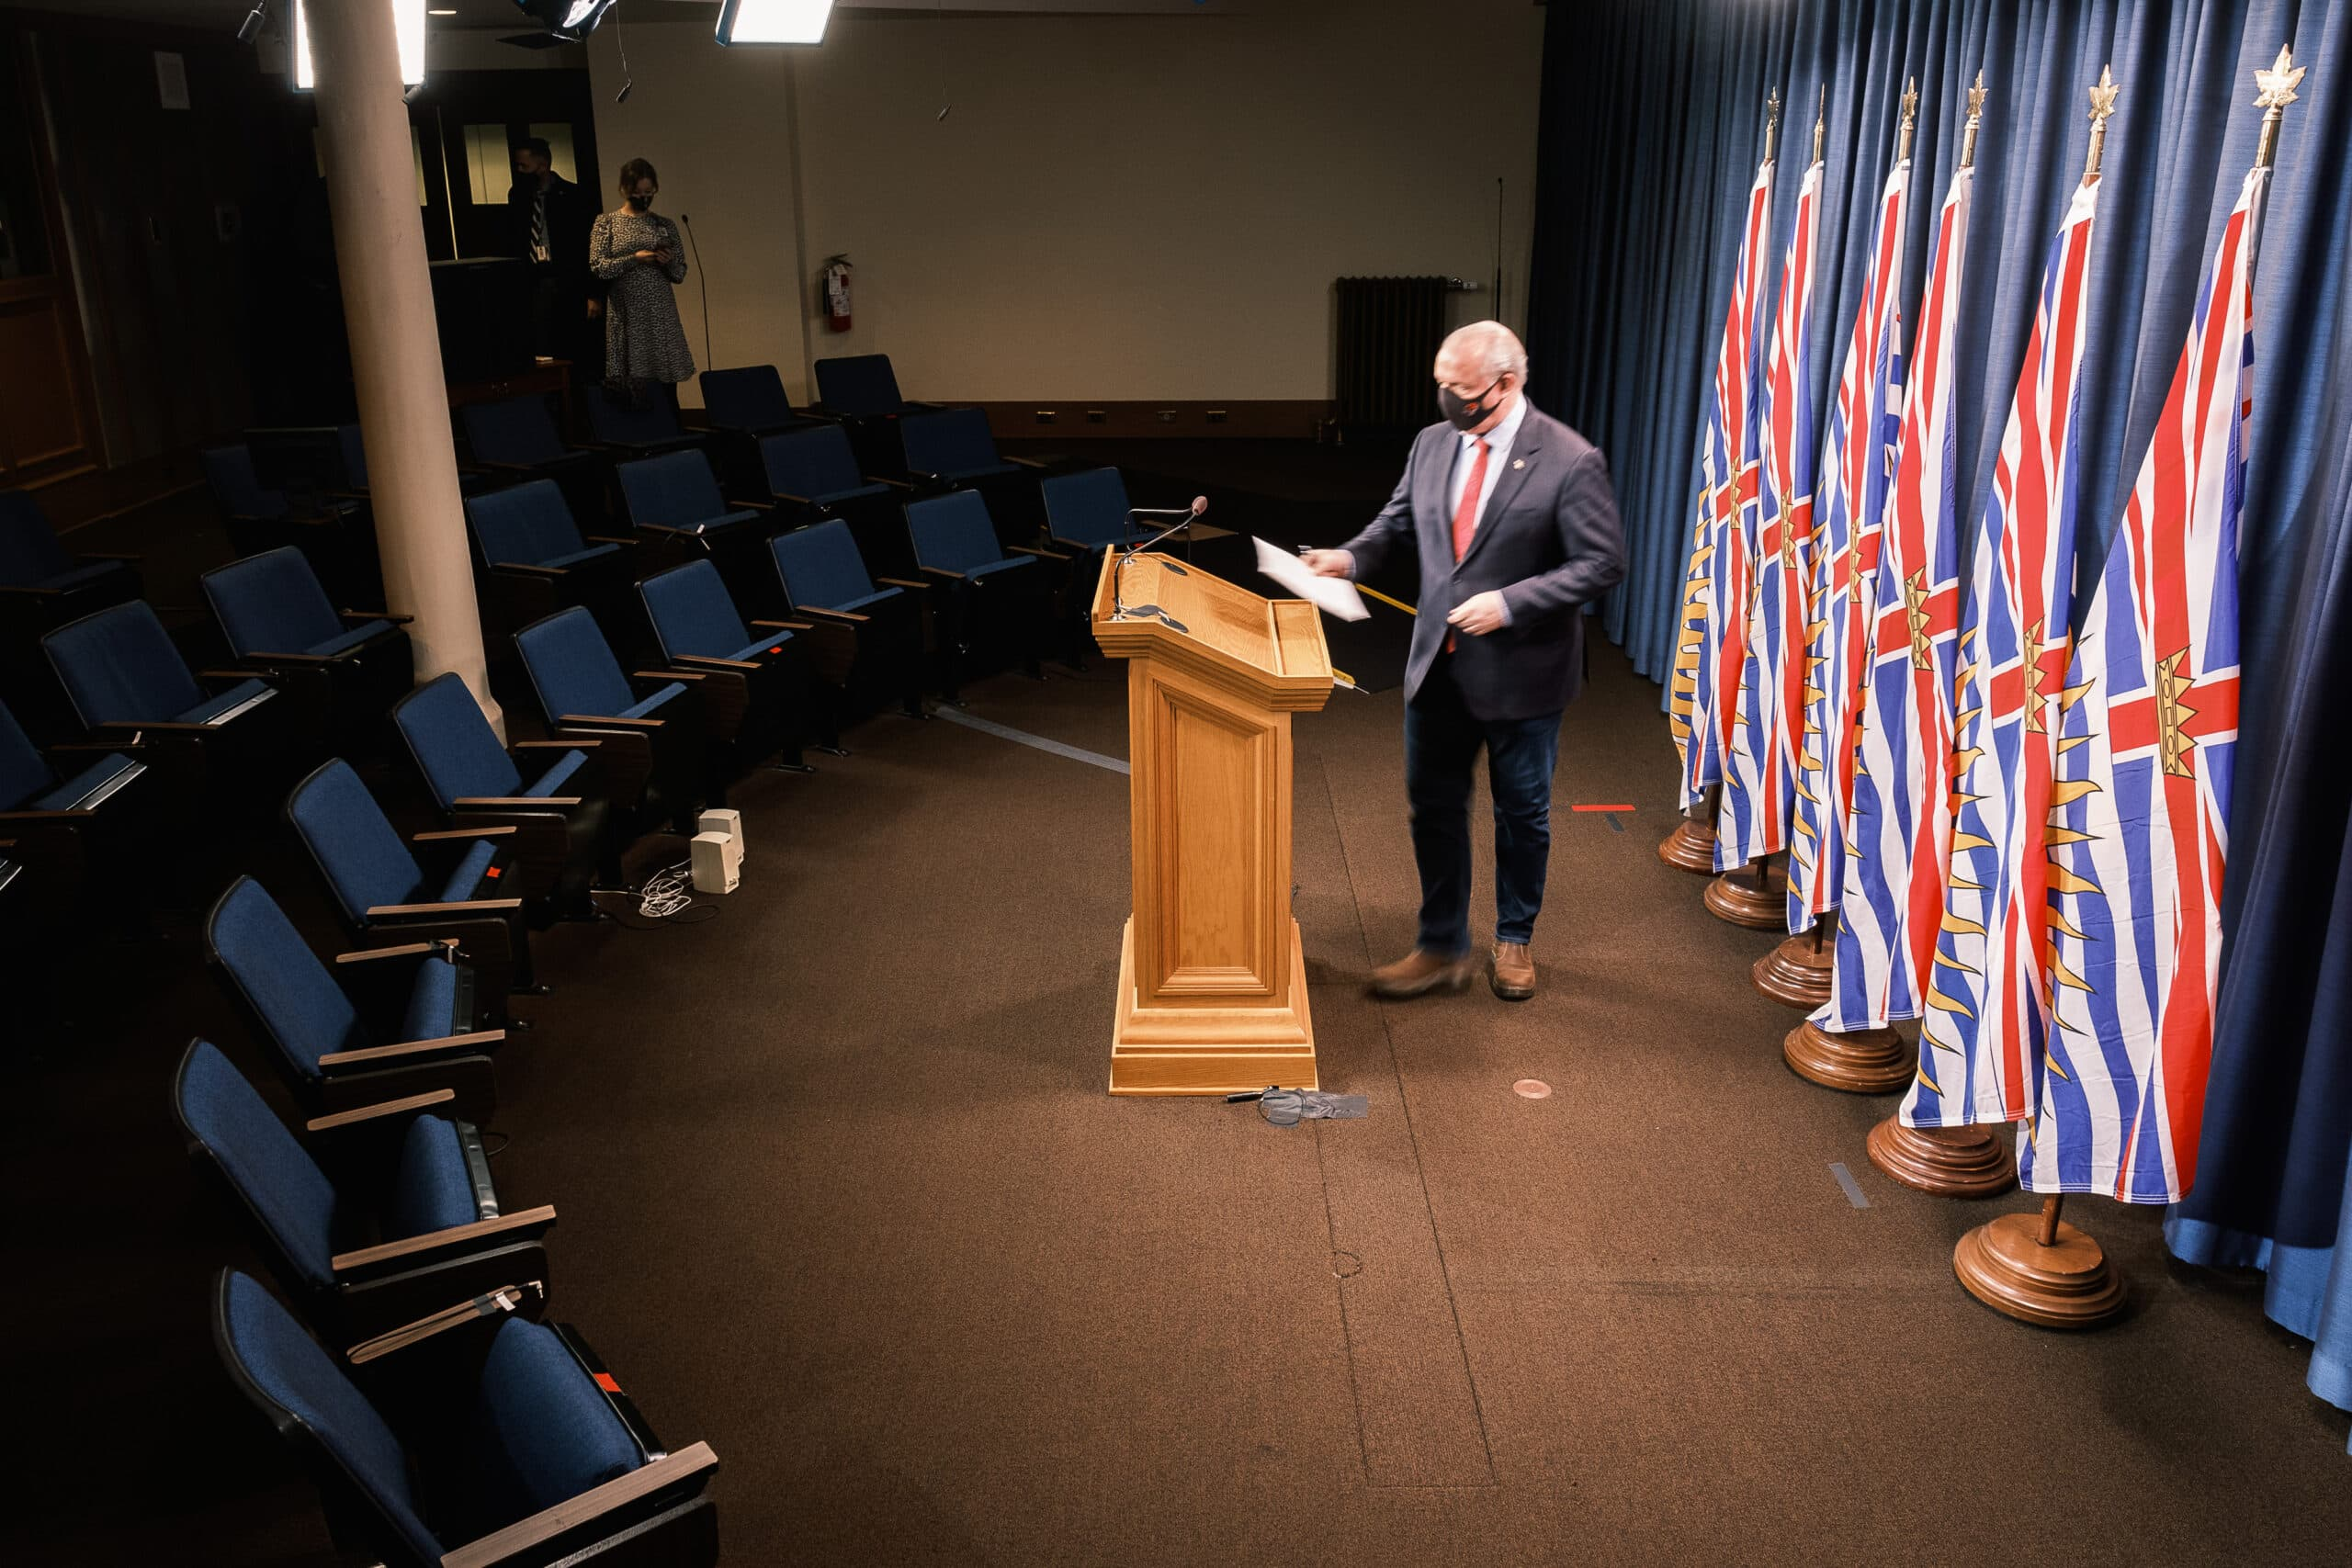 John Horgan standing at podium by himself with a mask on